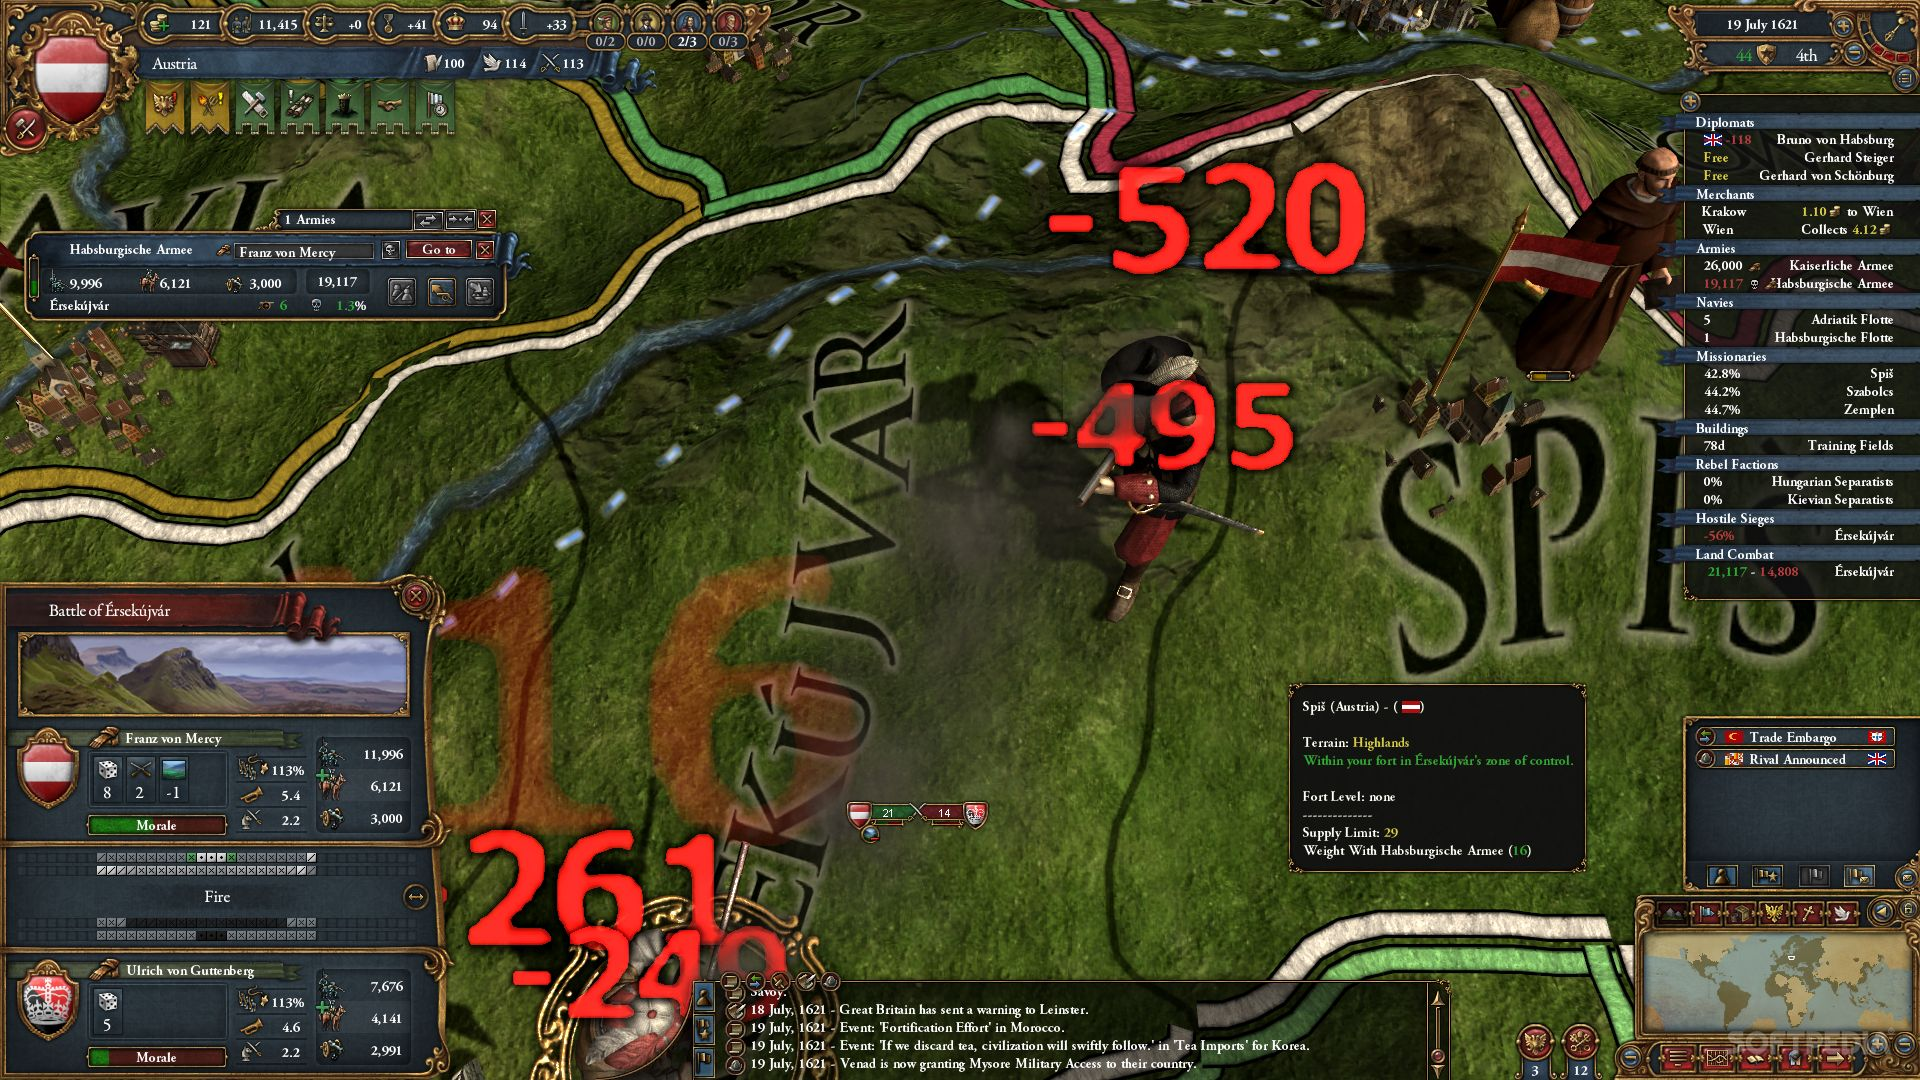 https://news-cdn.softpedia.com/images/news2/Europa-Universalis-IV-Common-Sense-Review-PC-483884-16.jpg